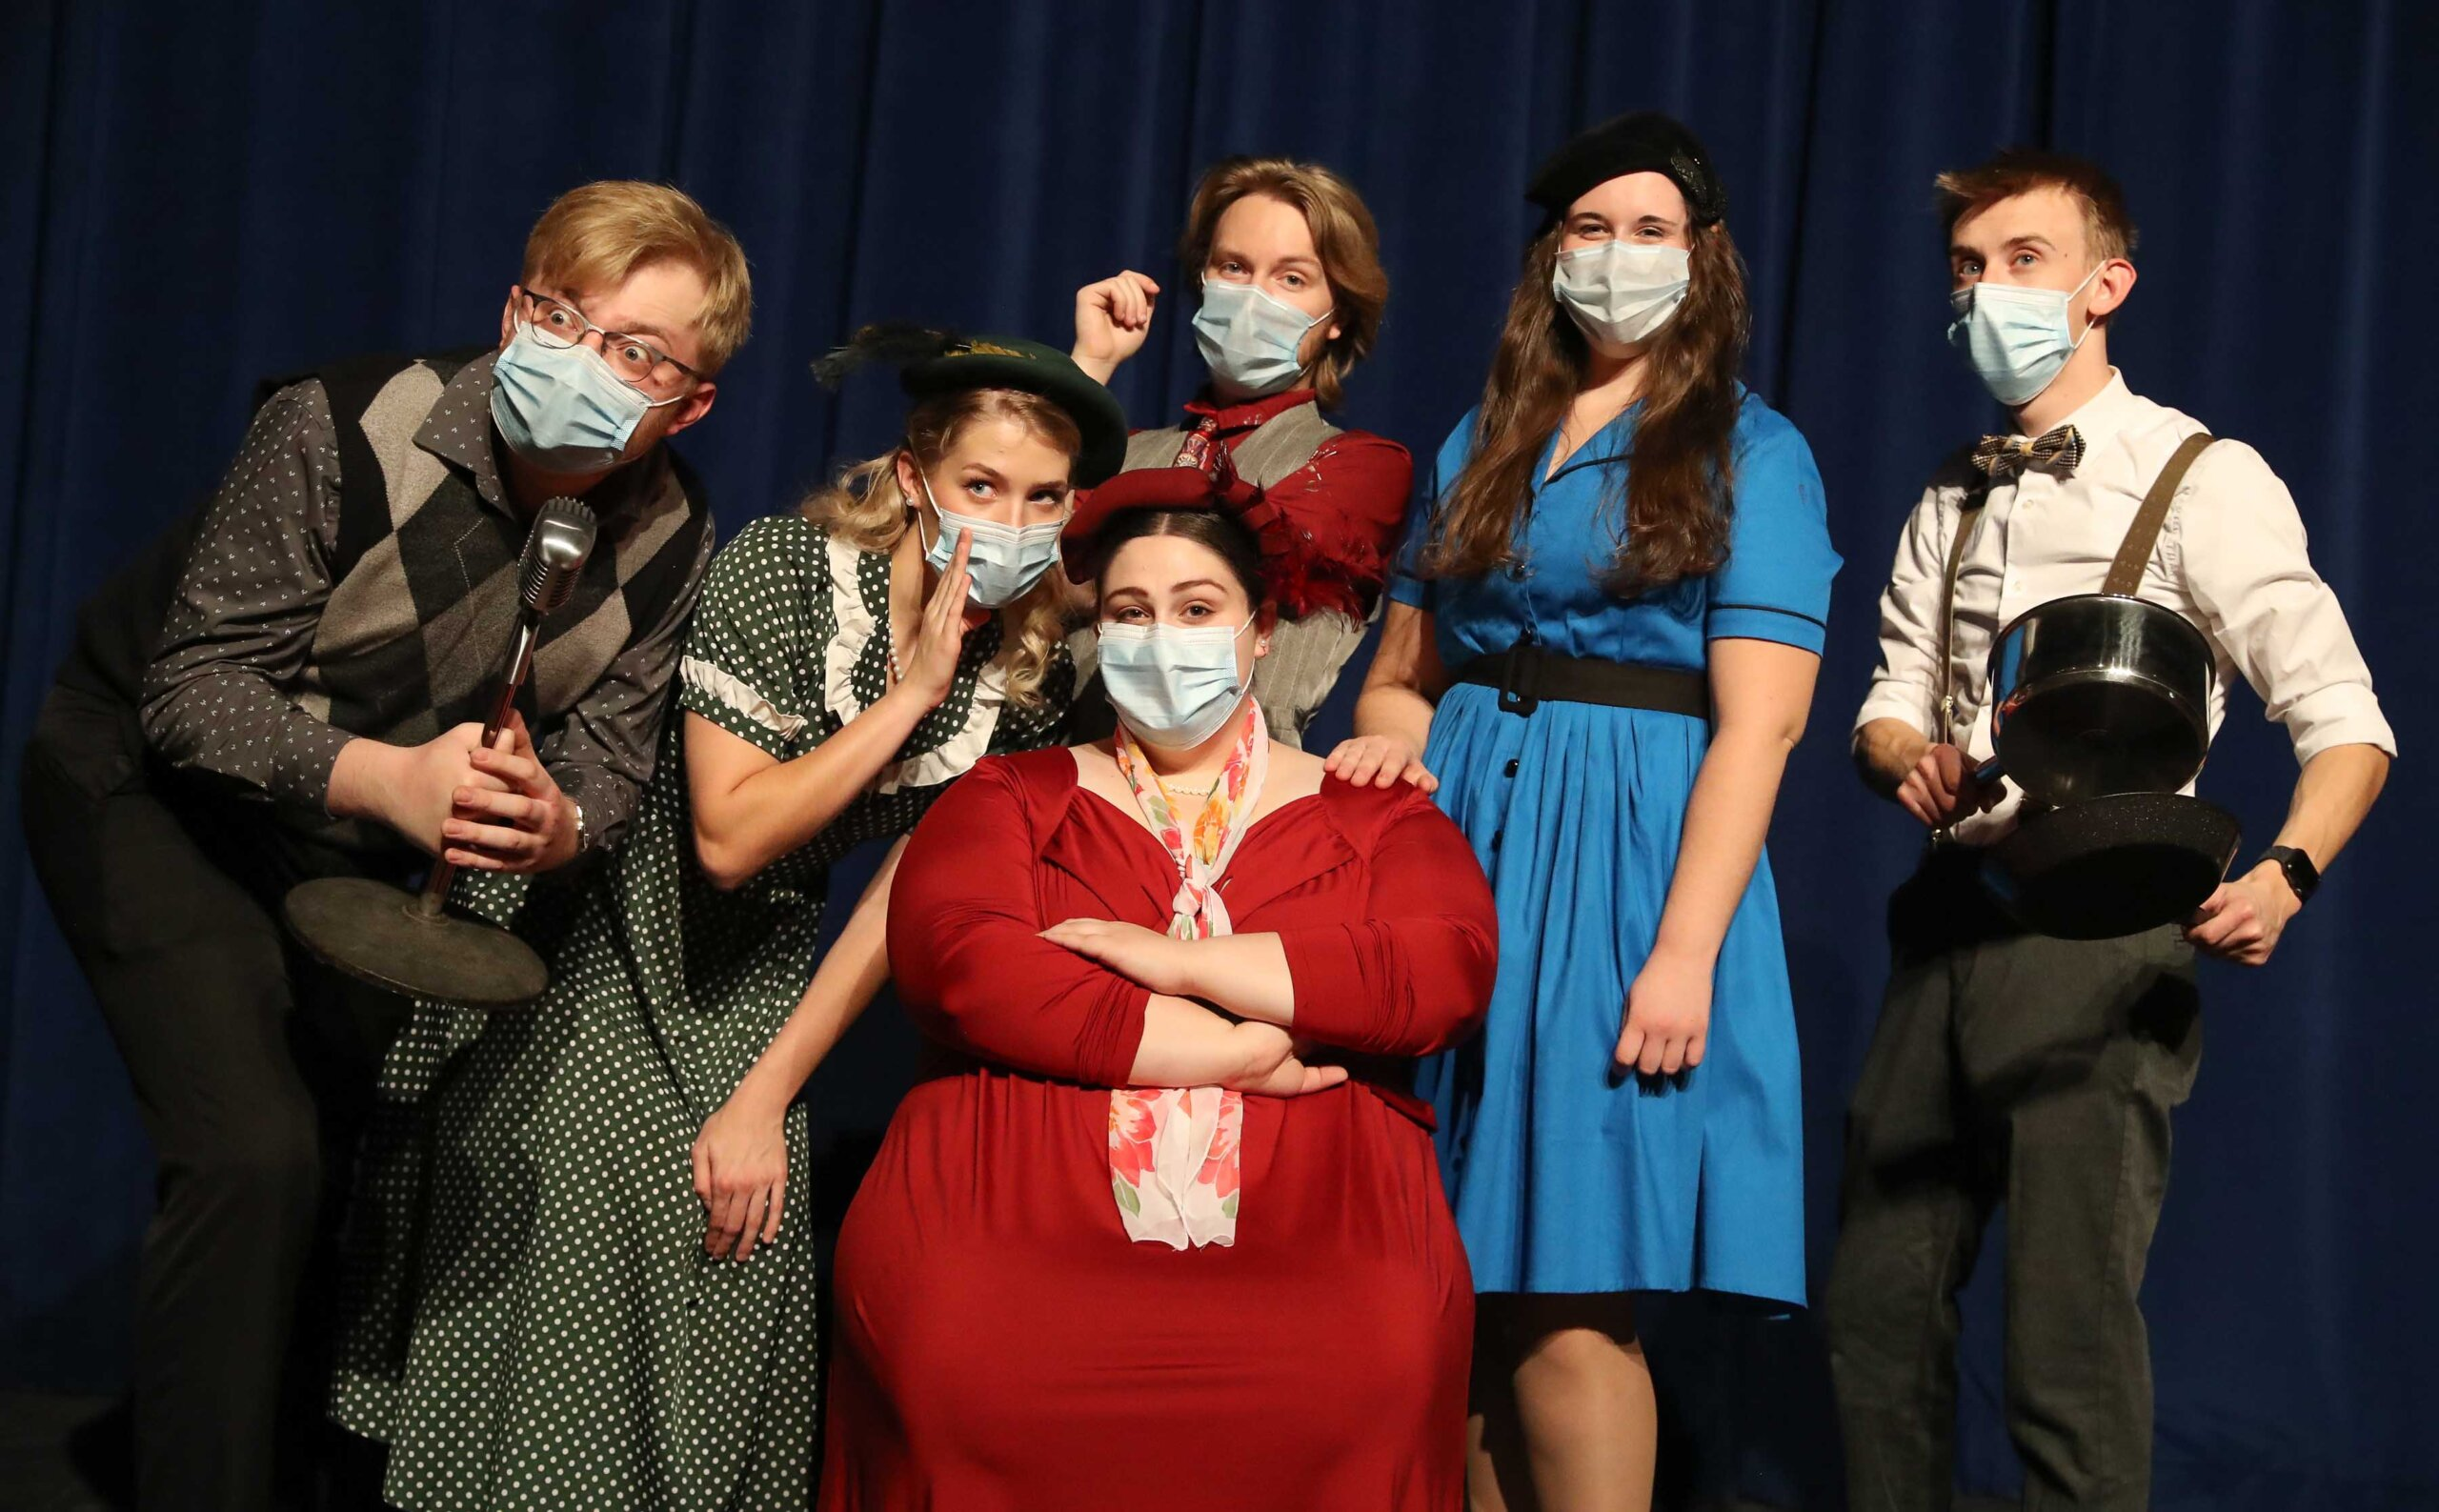 """From left, UNK students Will Frederick, Hannah Petersen, Terran Homburg, Maximus Wohler, Cassie Brown and Bryce Emde are part of the upcoming Opera Workshop production """"The Old Maid and the Thief."""" The live radio opera will be presented 2 p.m. Sunday on KLPR 91.1 FM and via livestream."""